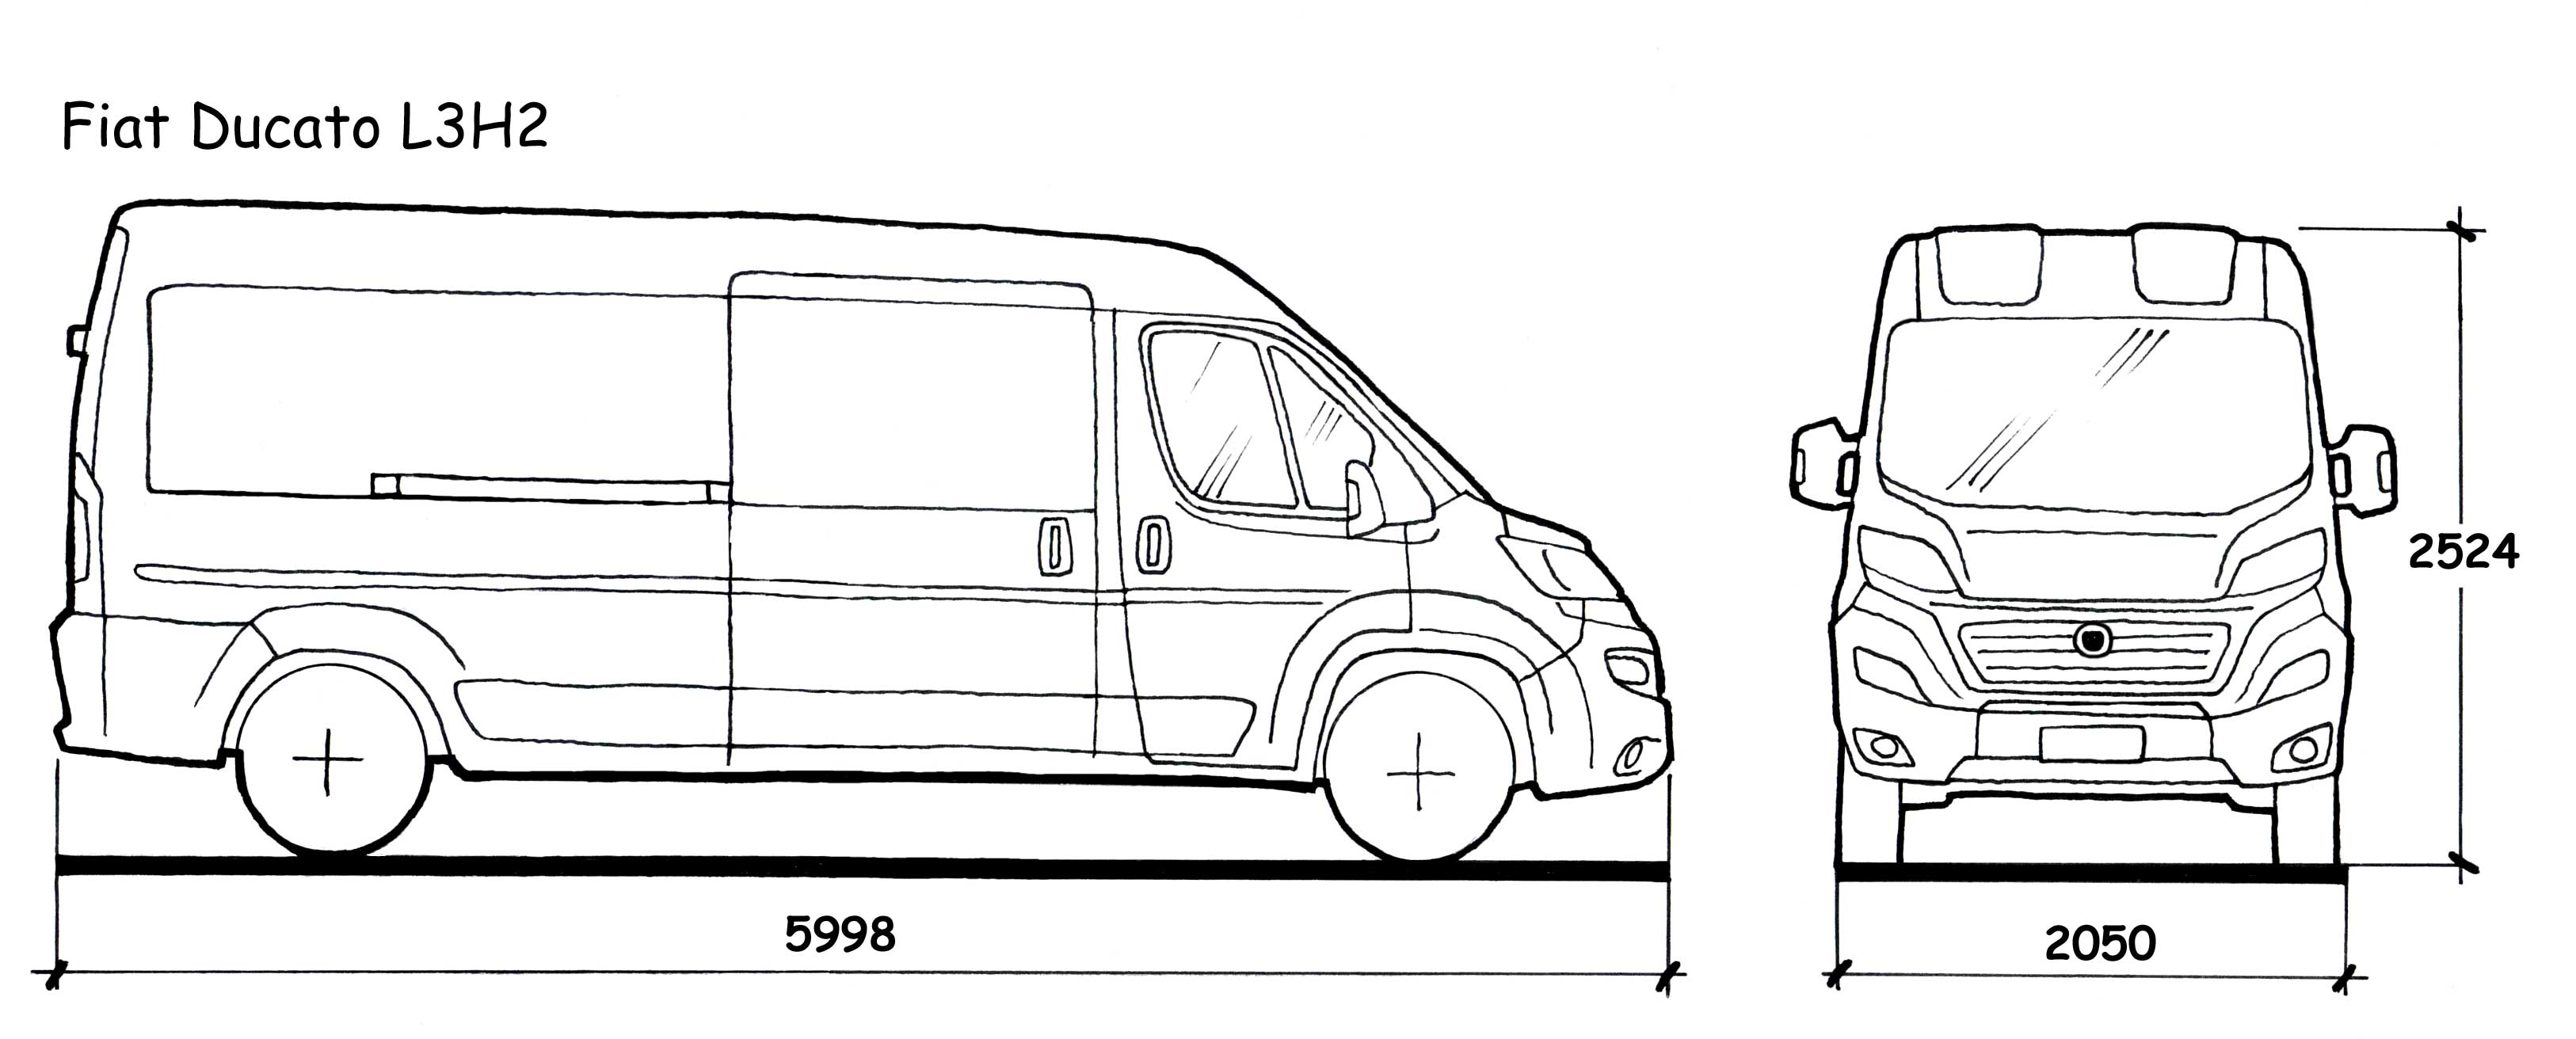 Peugeot Boxer Dimensions. the vector drawing peugeot boxer